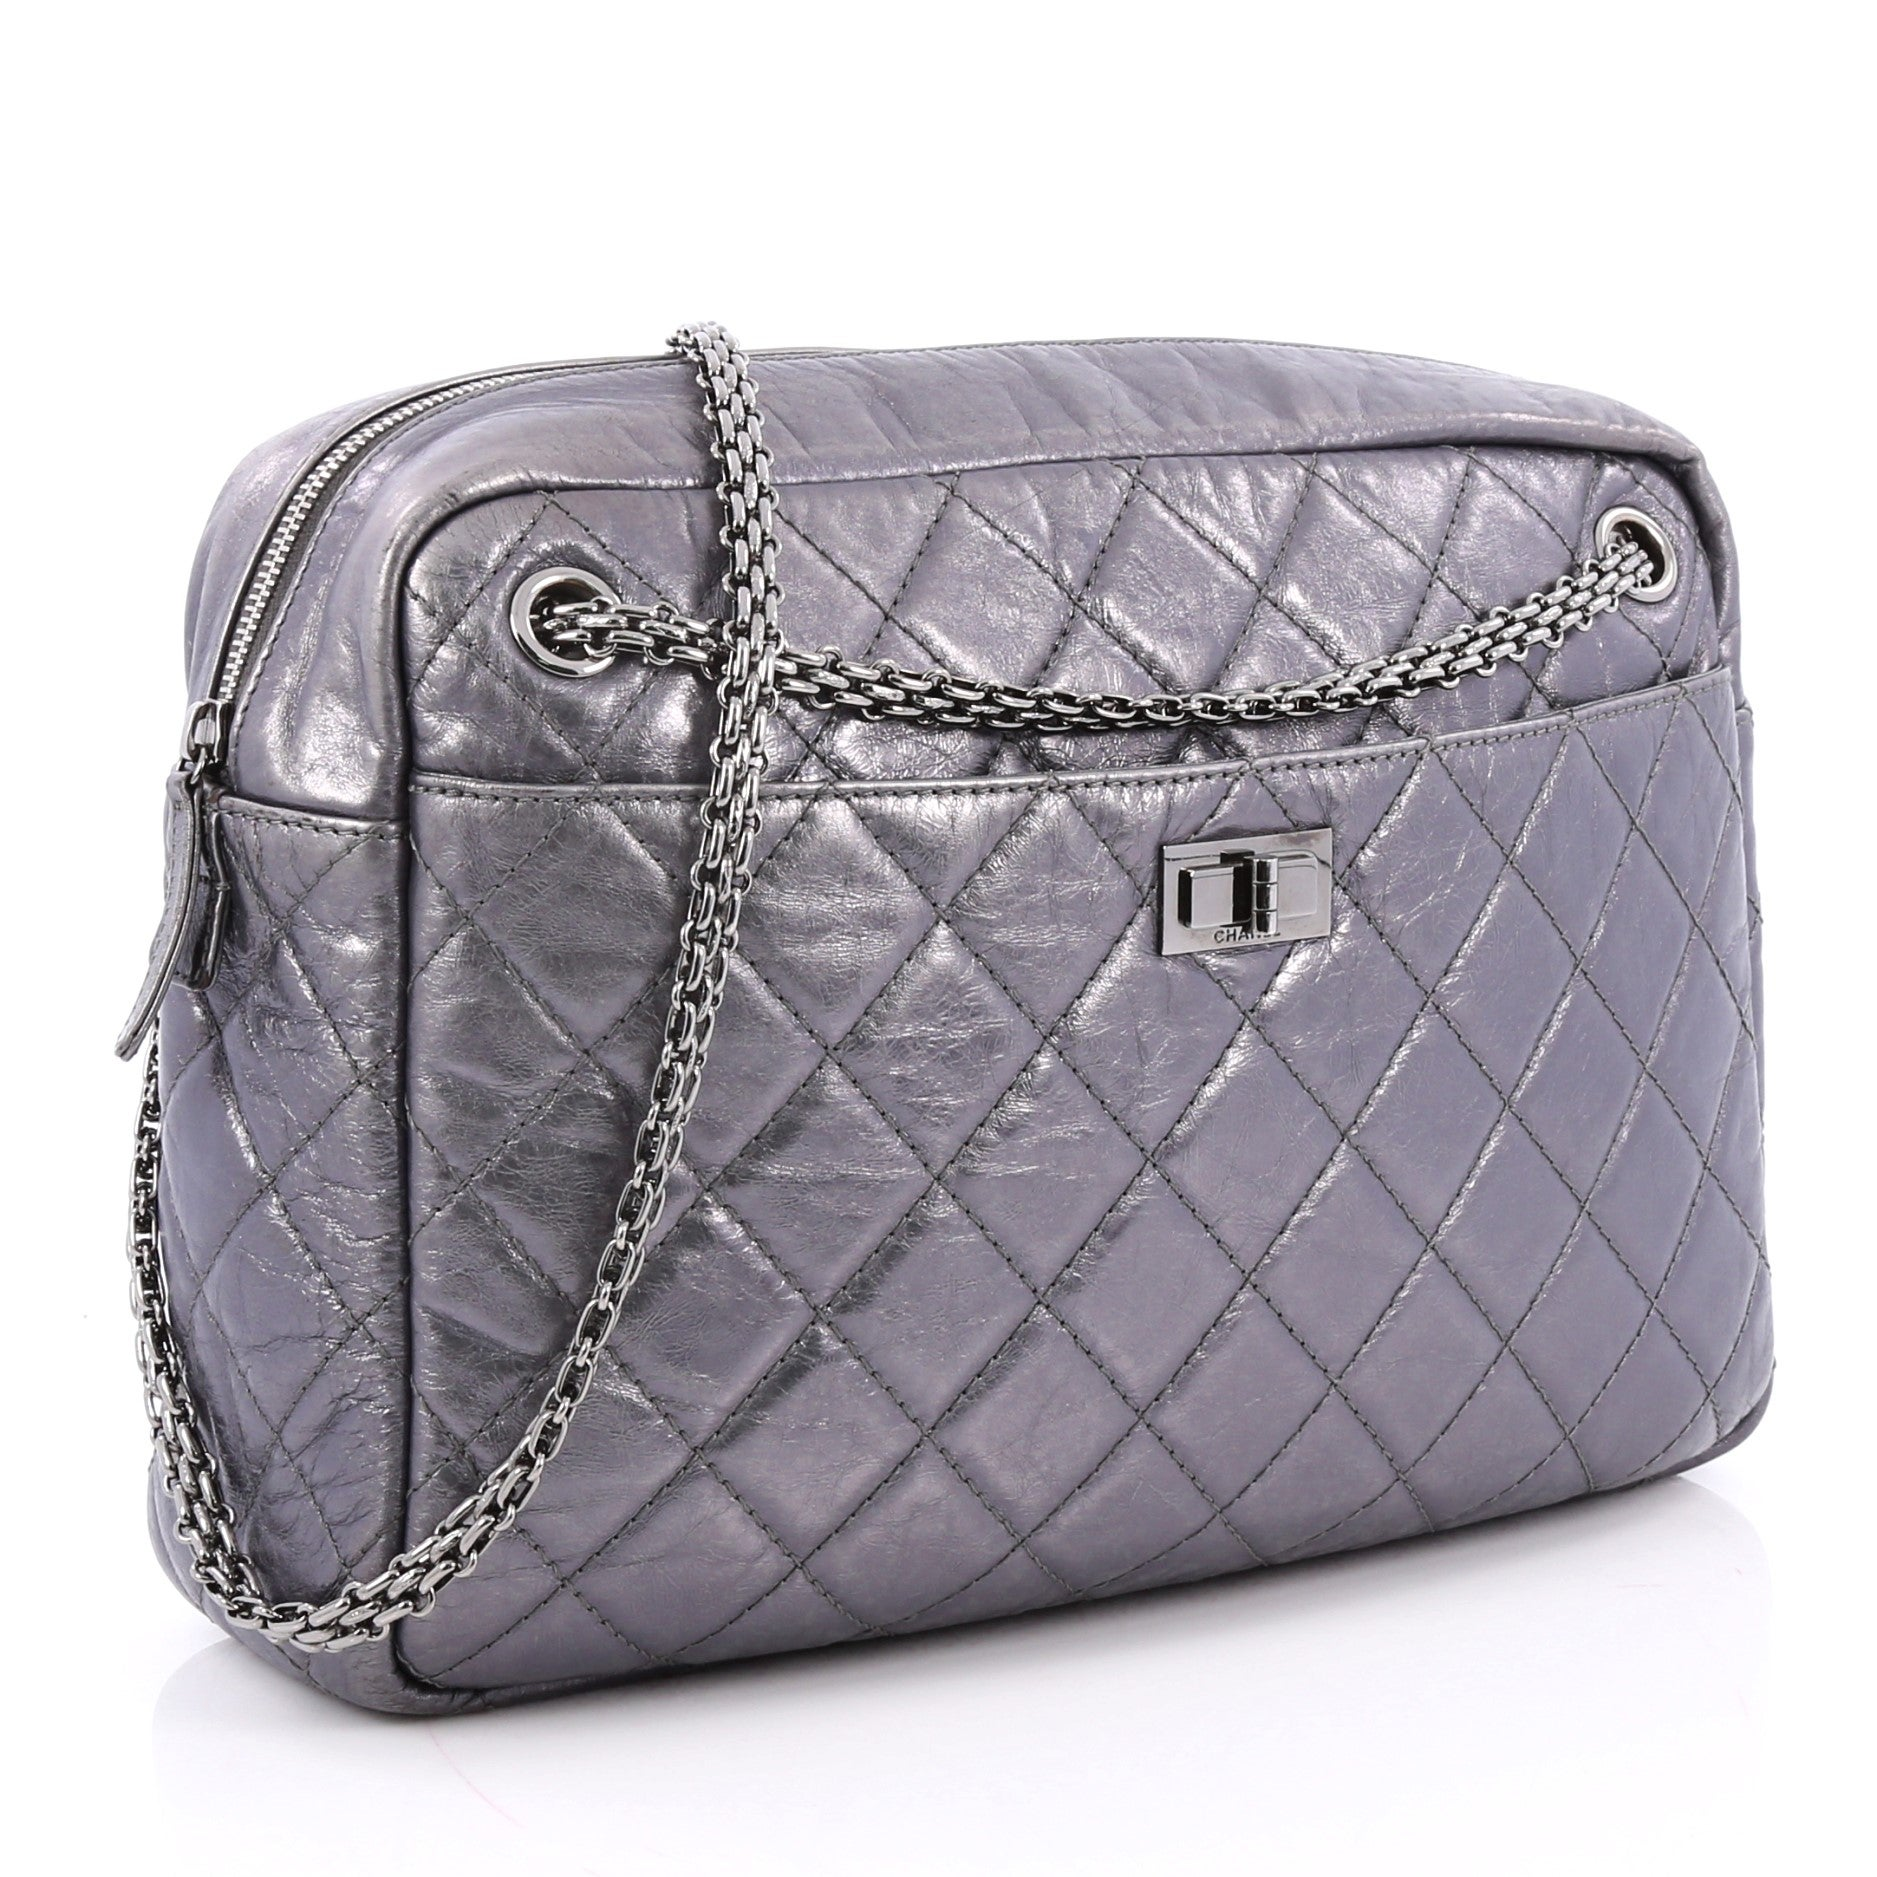 8784ada45dd5 Chanel Reissue Camera Bag Quilted Aged Calfskin Large at 1stdibs